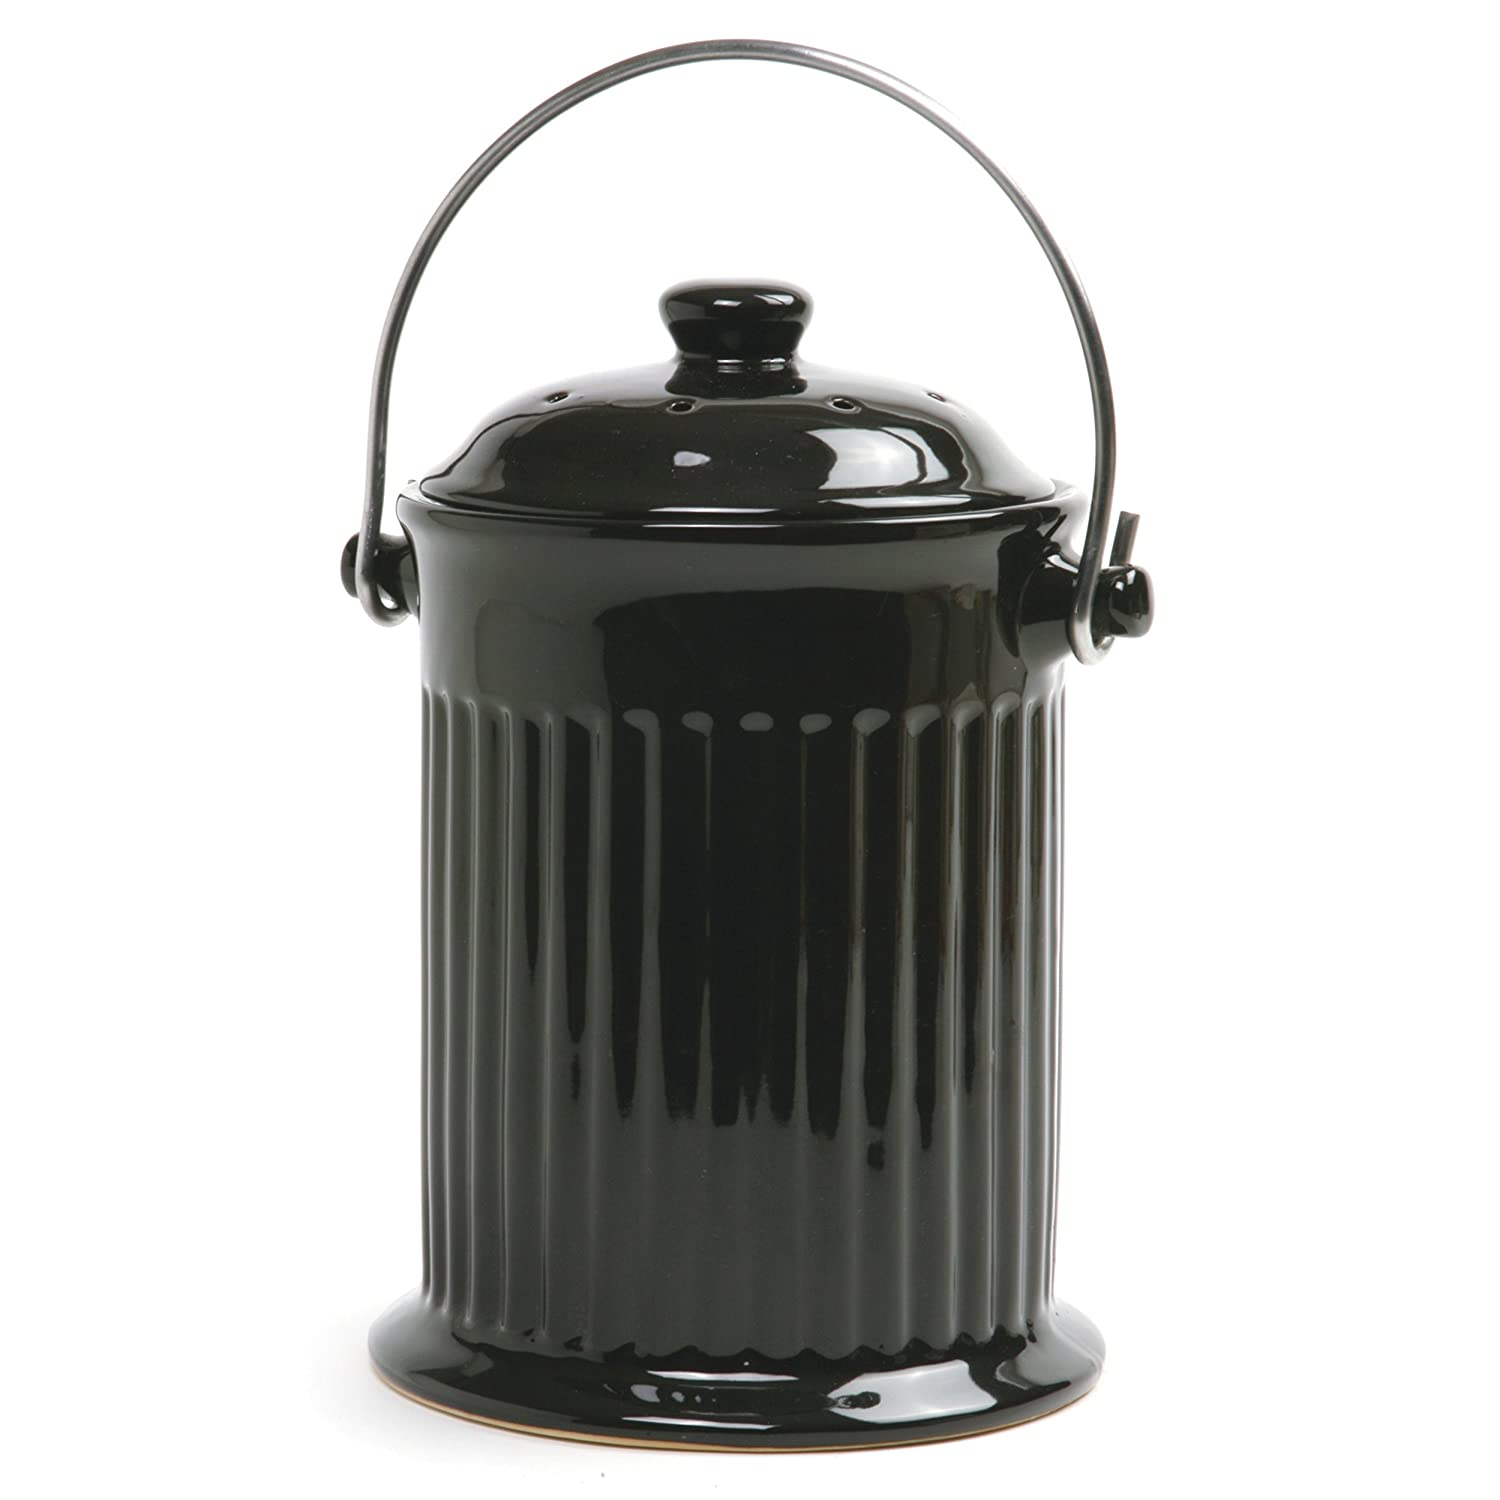 Amazon.com: Norpro Ceramic Compost Keeper, Black: Compost Bins: Kitchen U0026  Dining